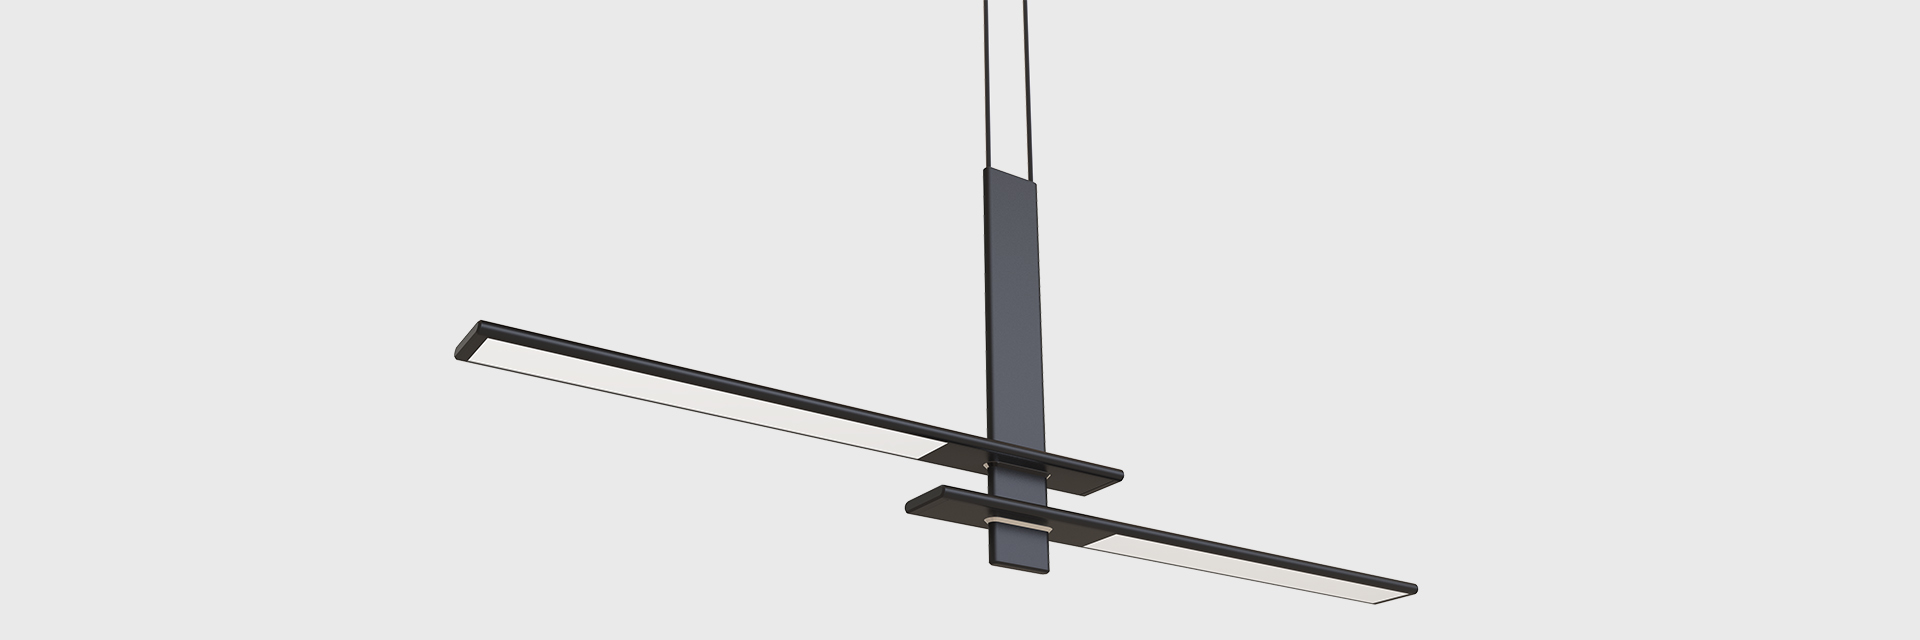 Pendant Lighting Poise Led Step Suspended Series Zentem